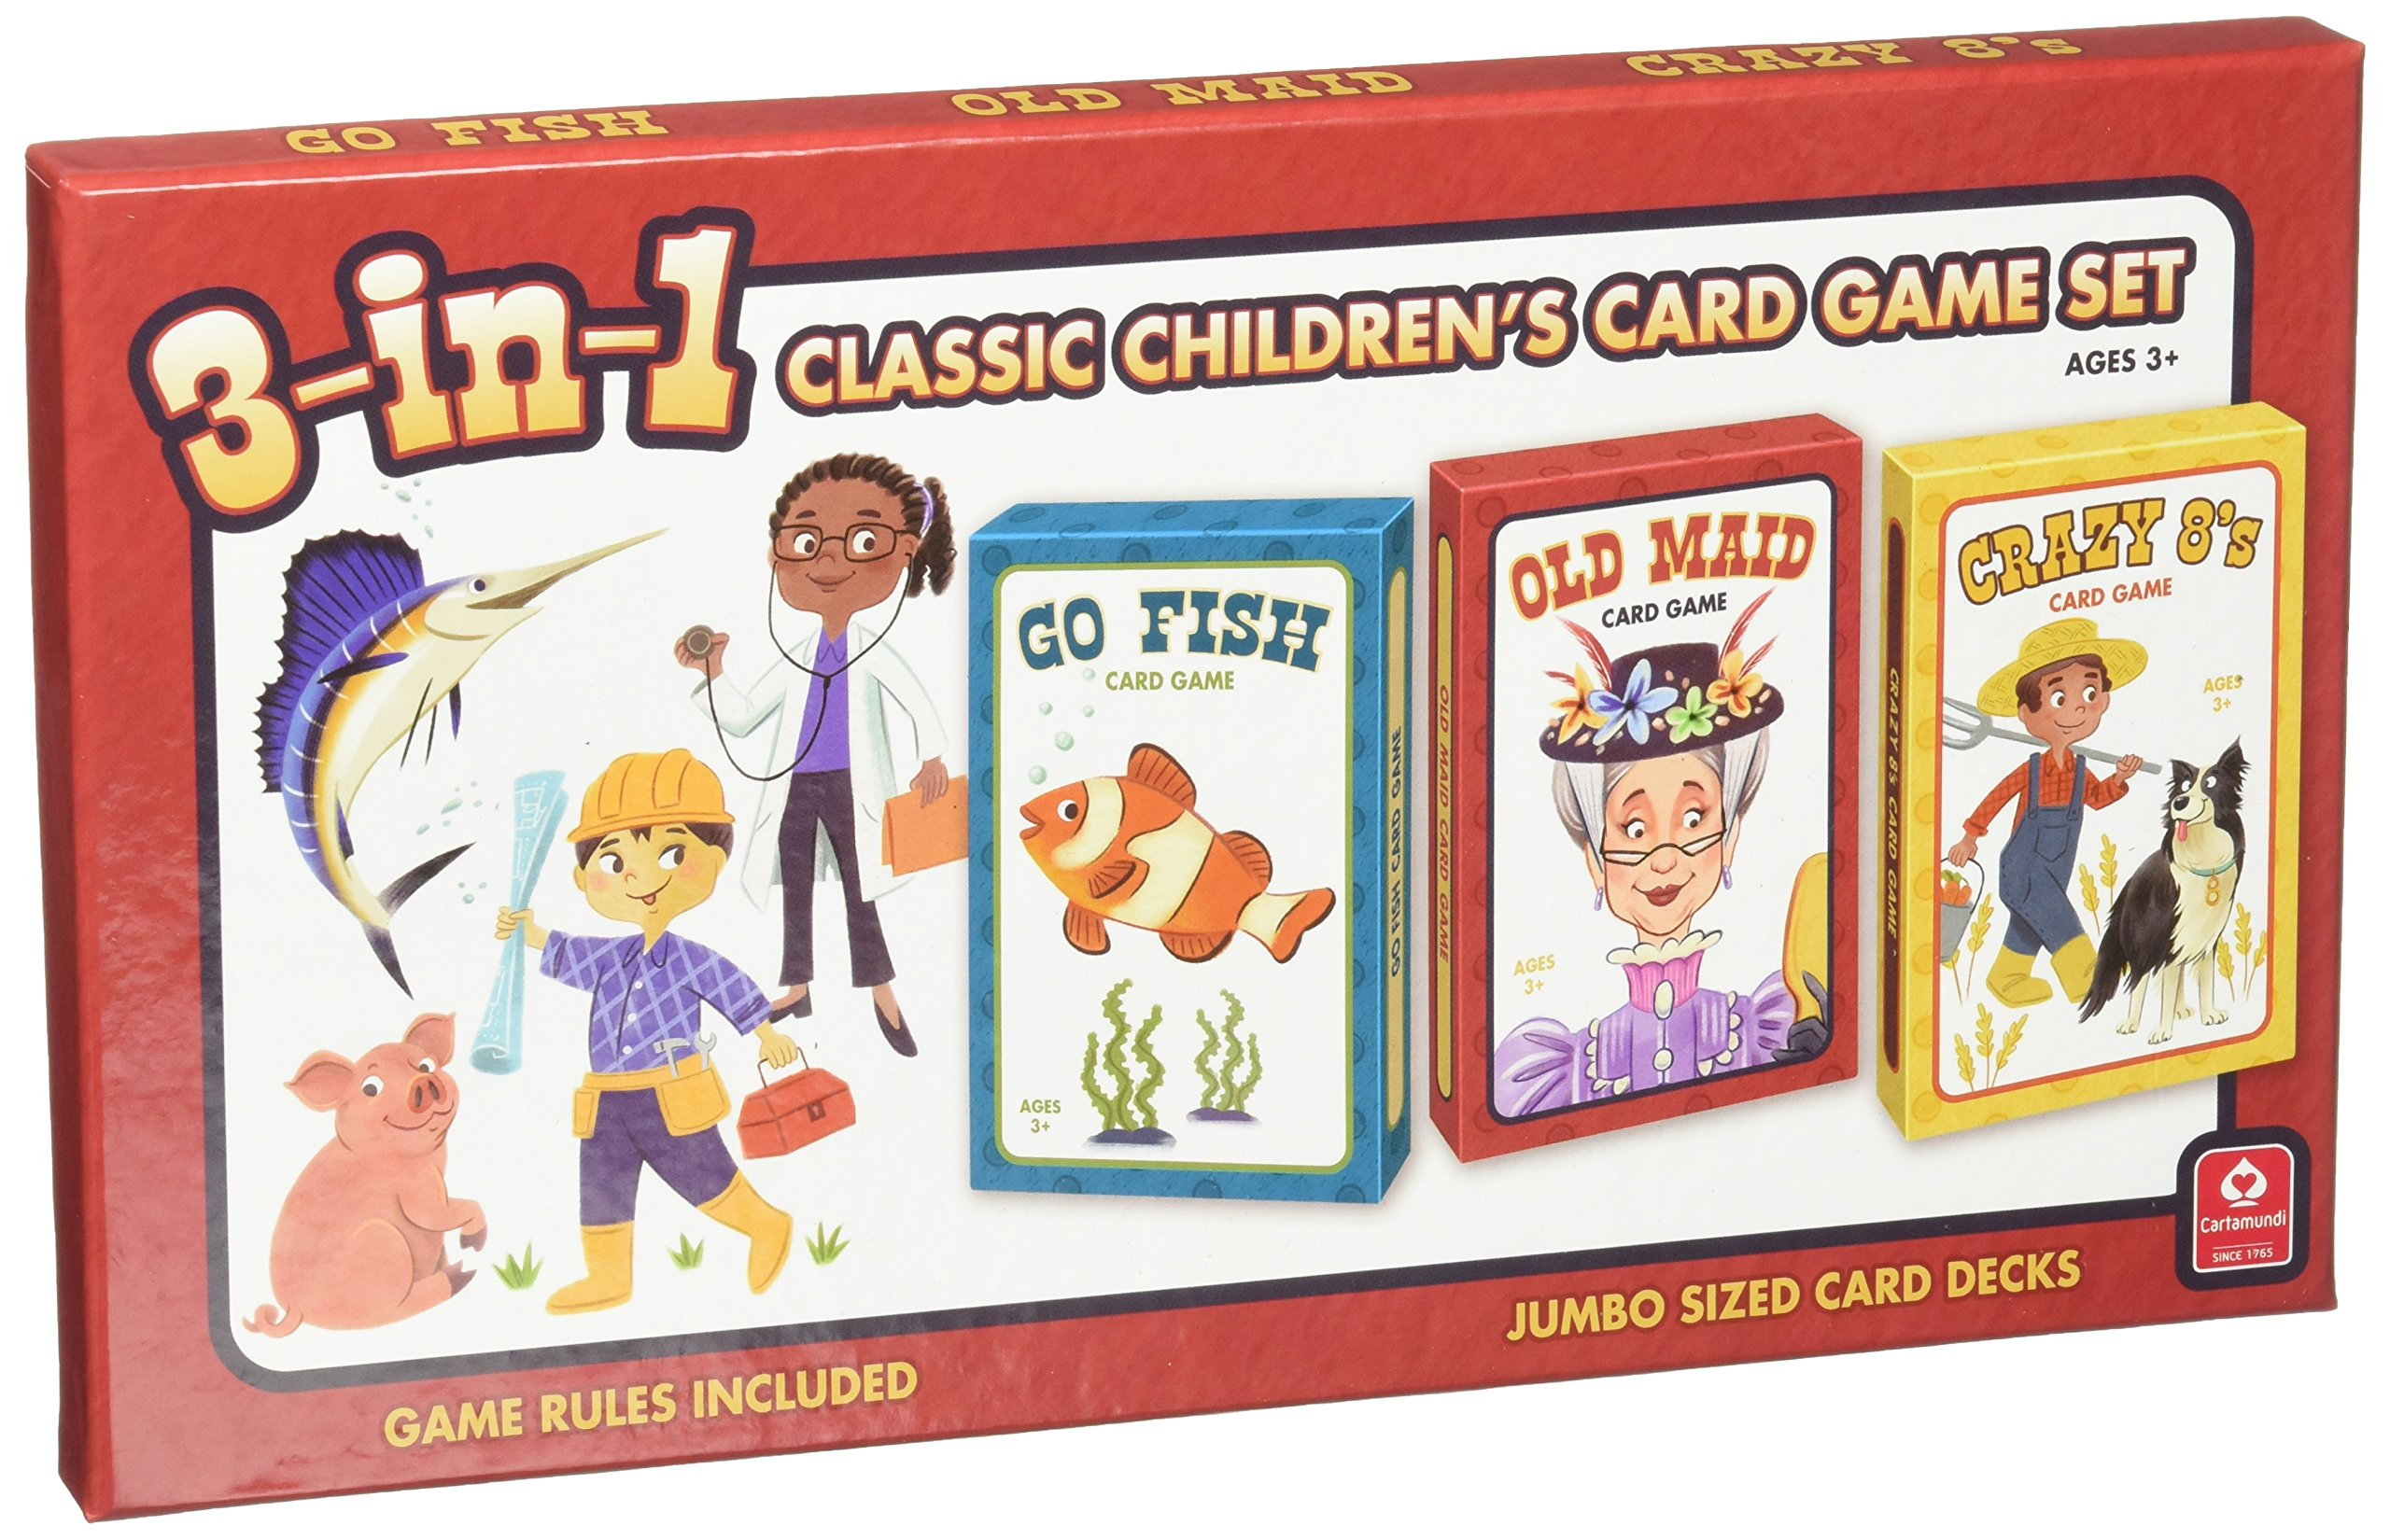 Cartamundi USA 3-in-1 Classic Children's Card Game Set